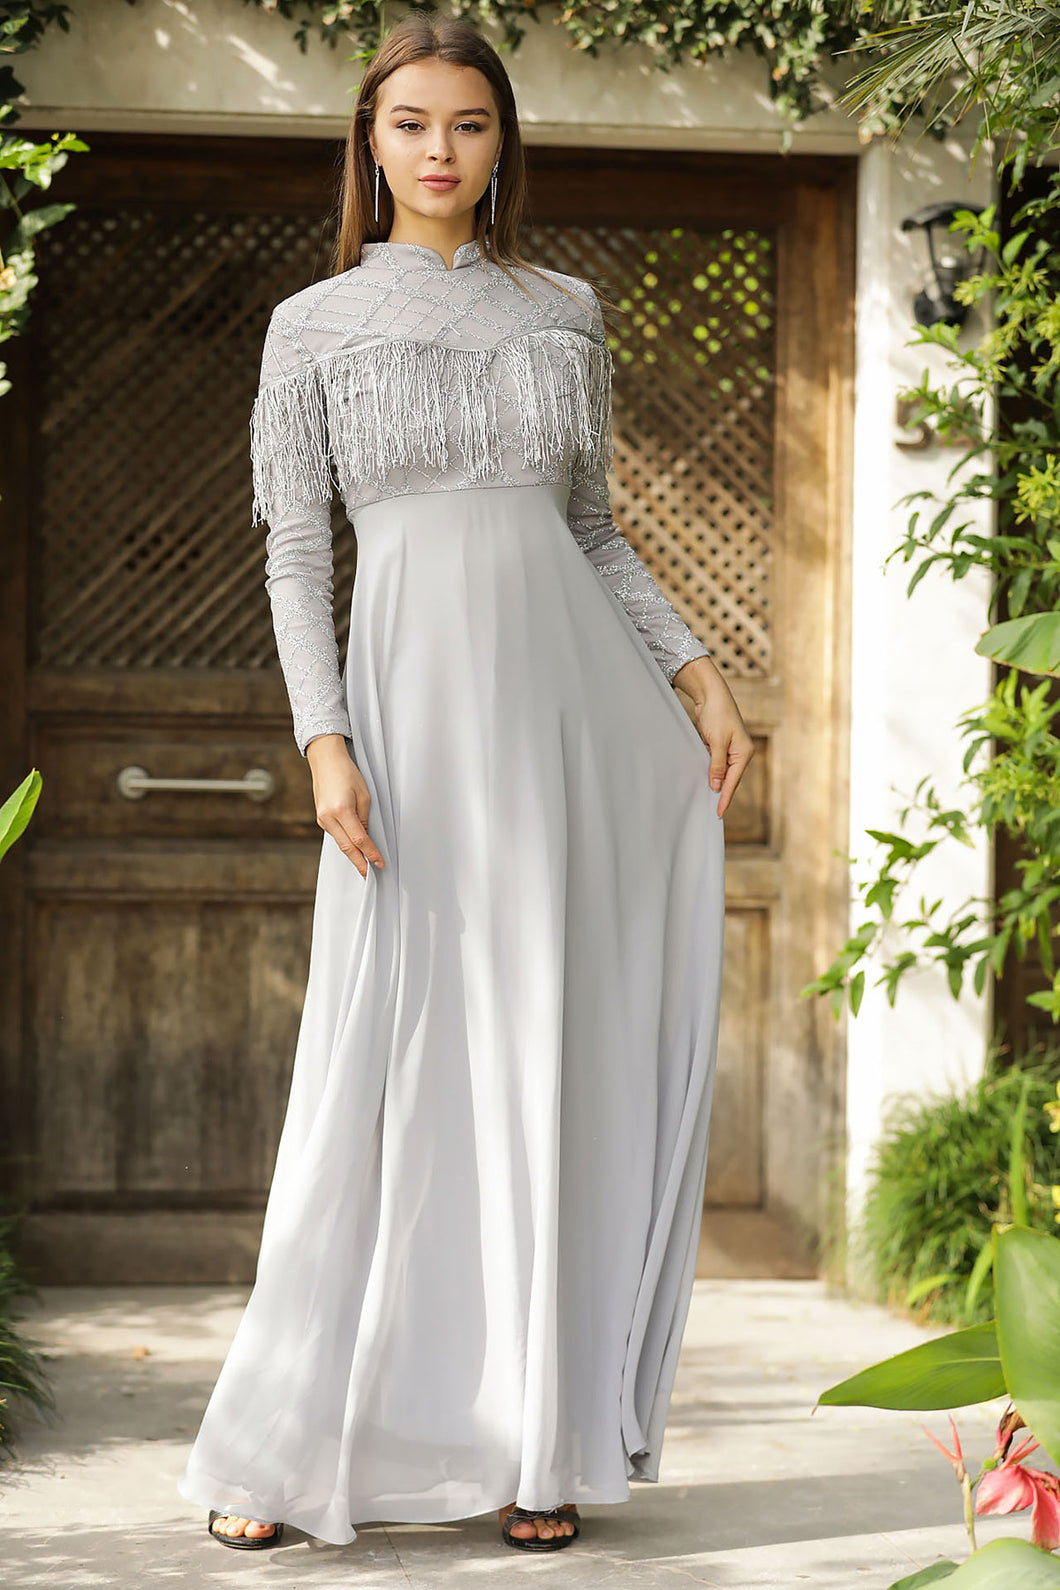 Women's Glitter Grey Long Evening Dress